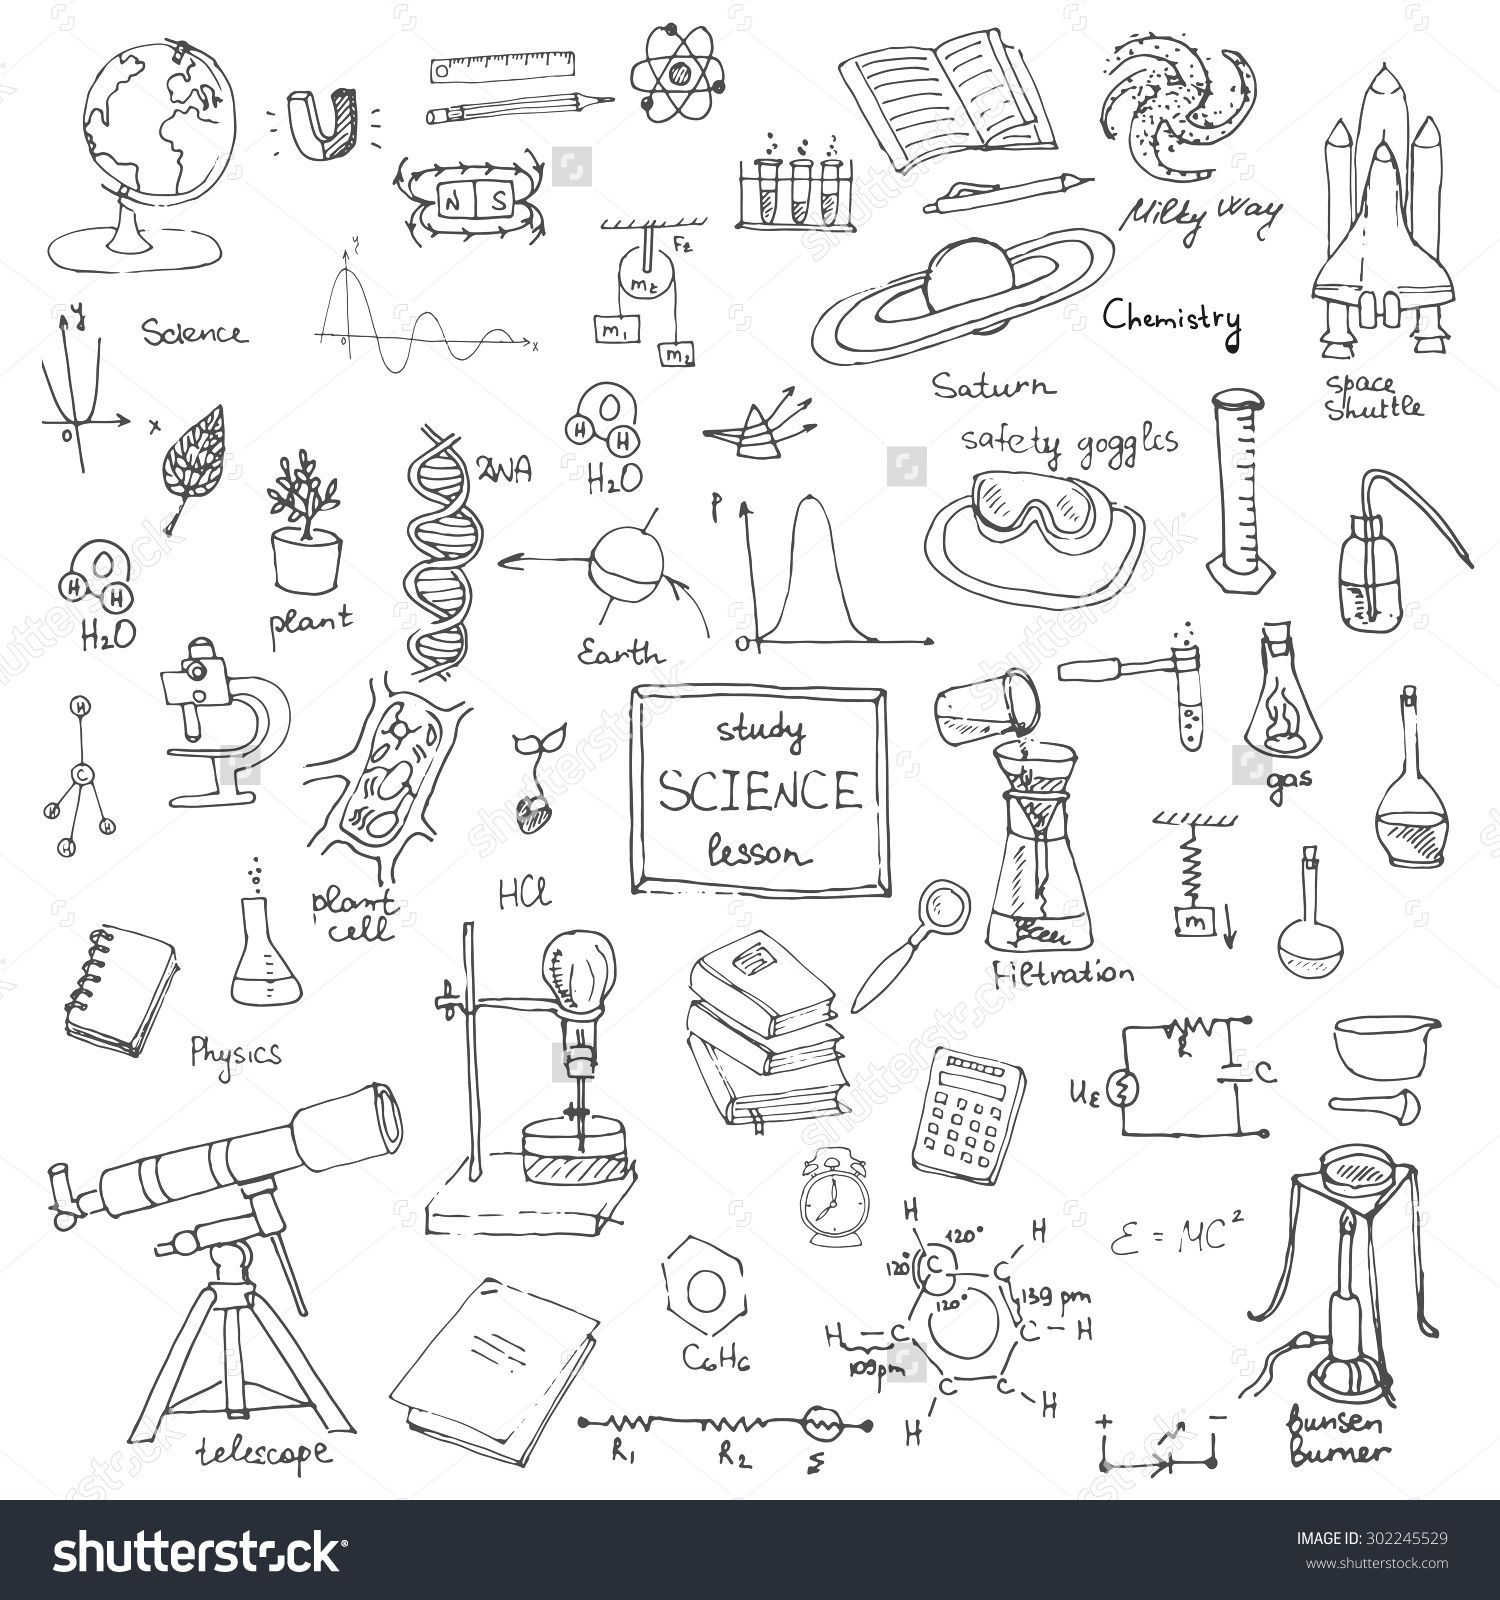 clipart freeuse stock Physics drawing themed. Freehand school items back